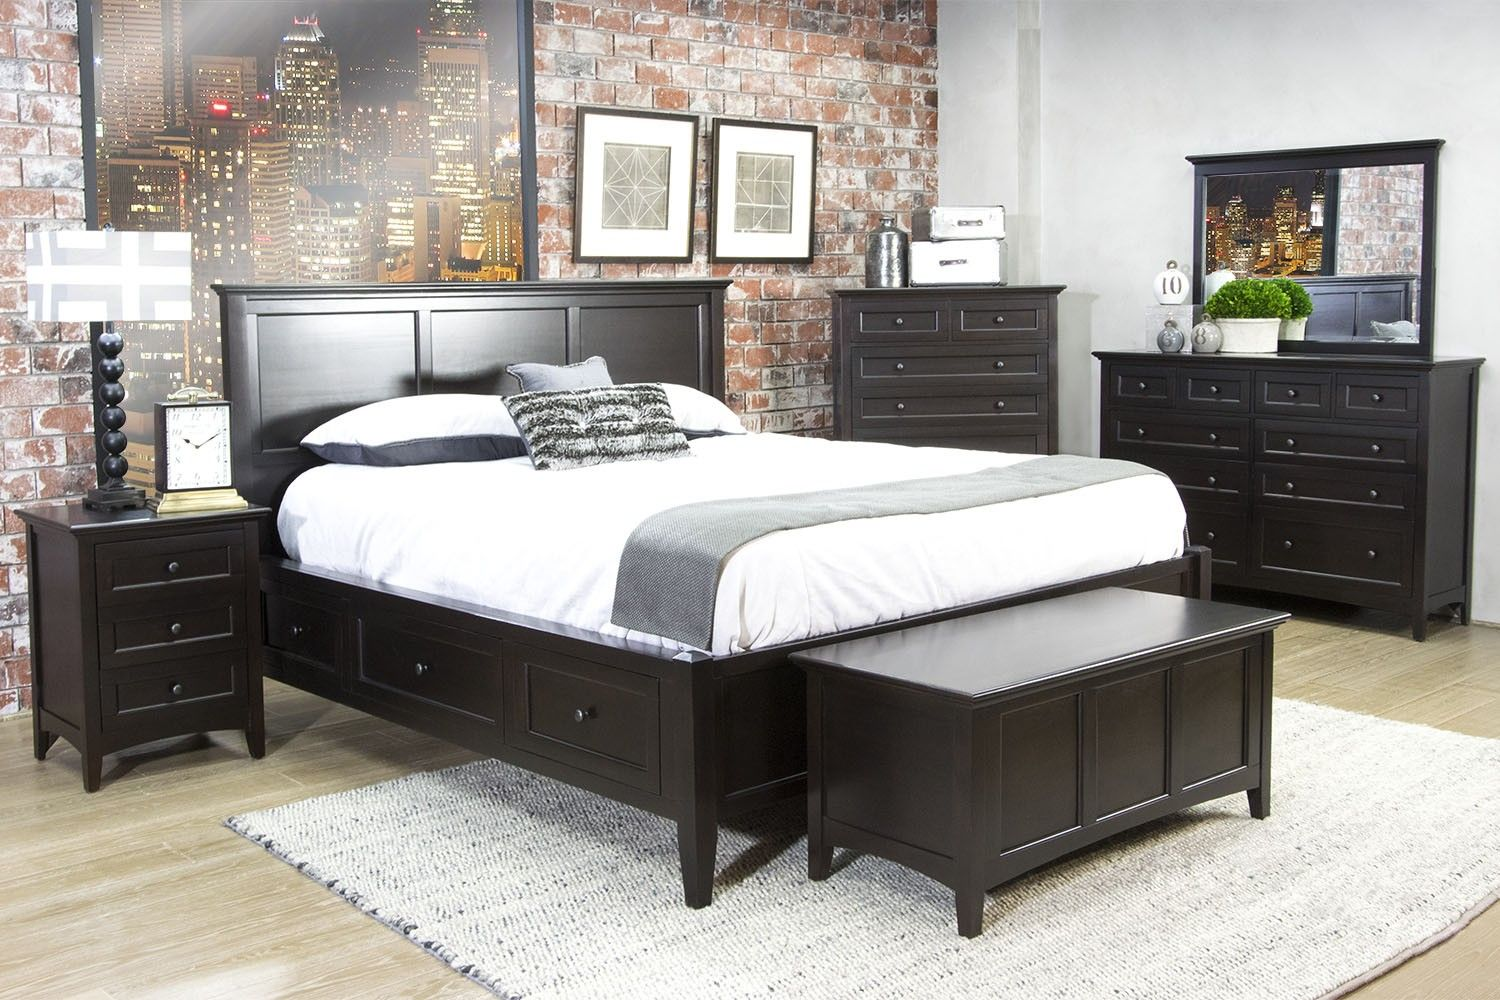 bedroom sets furniture mor media image the for set less product collection meadow